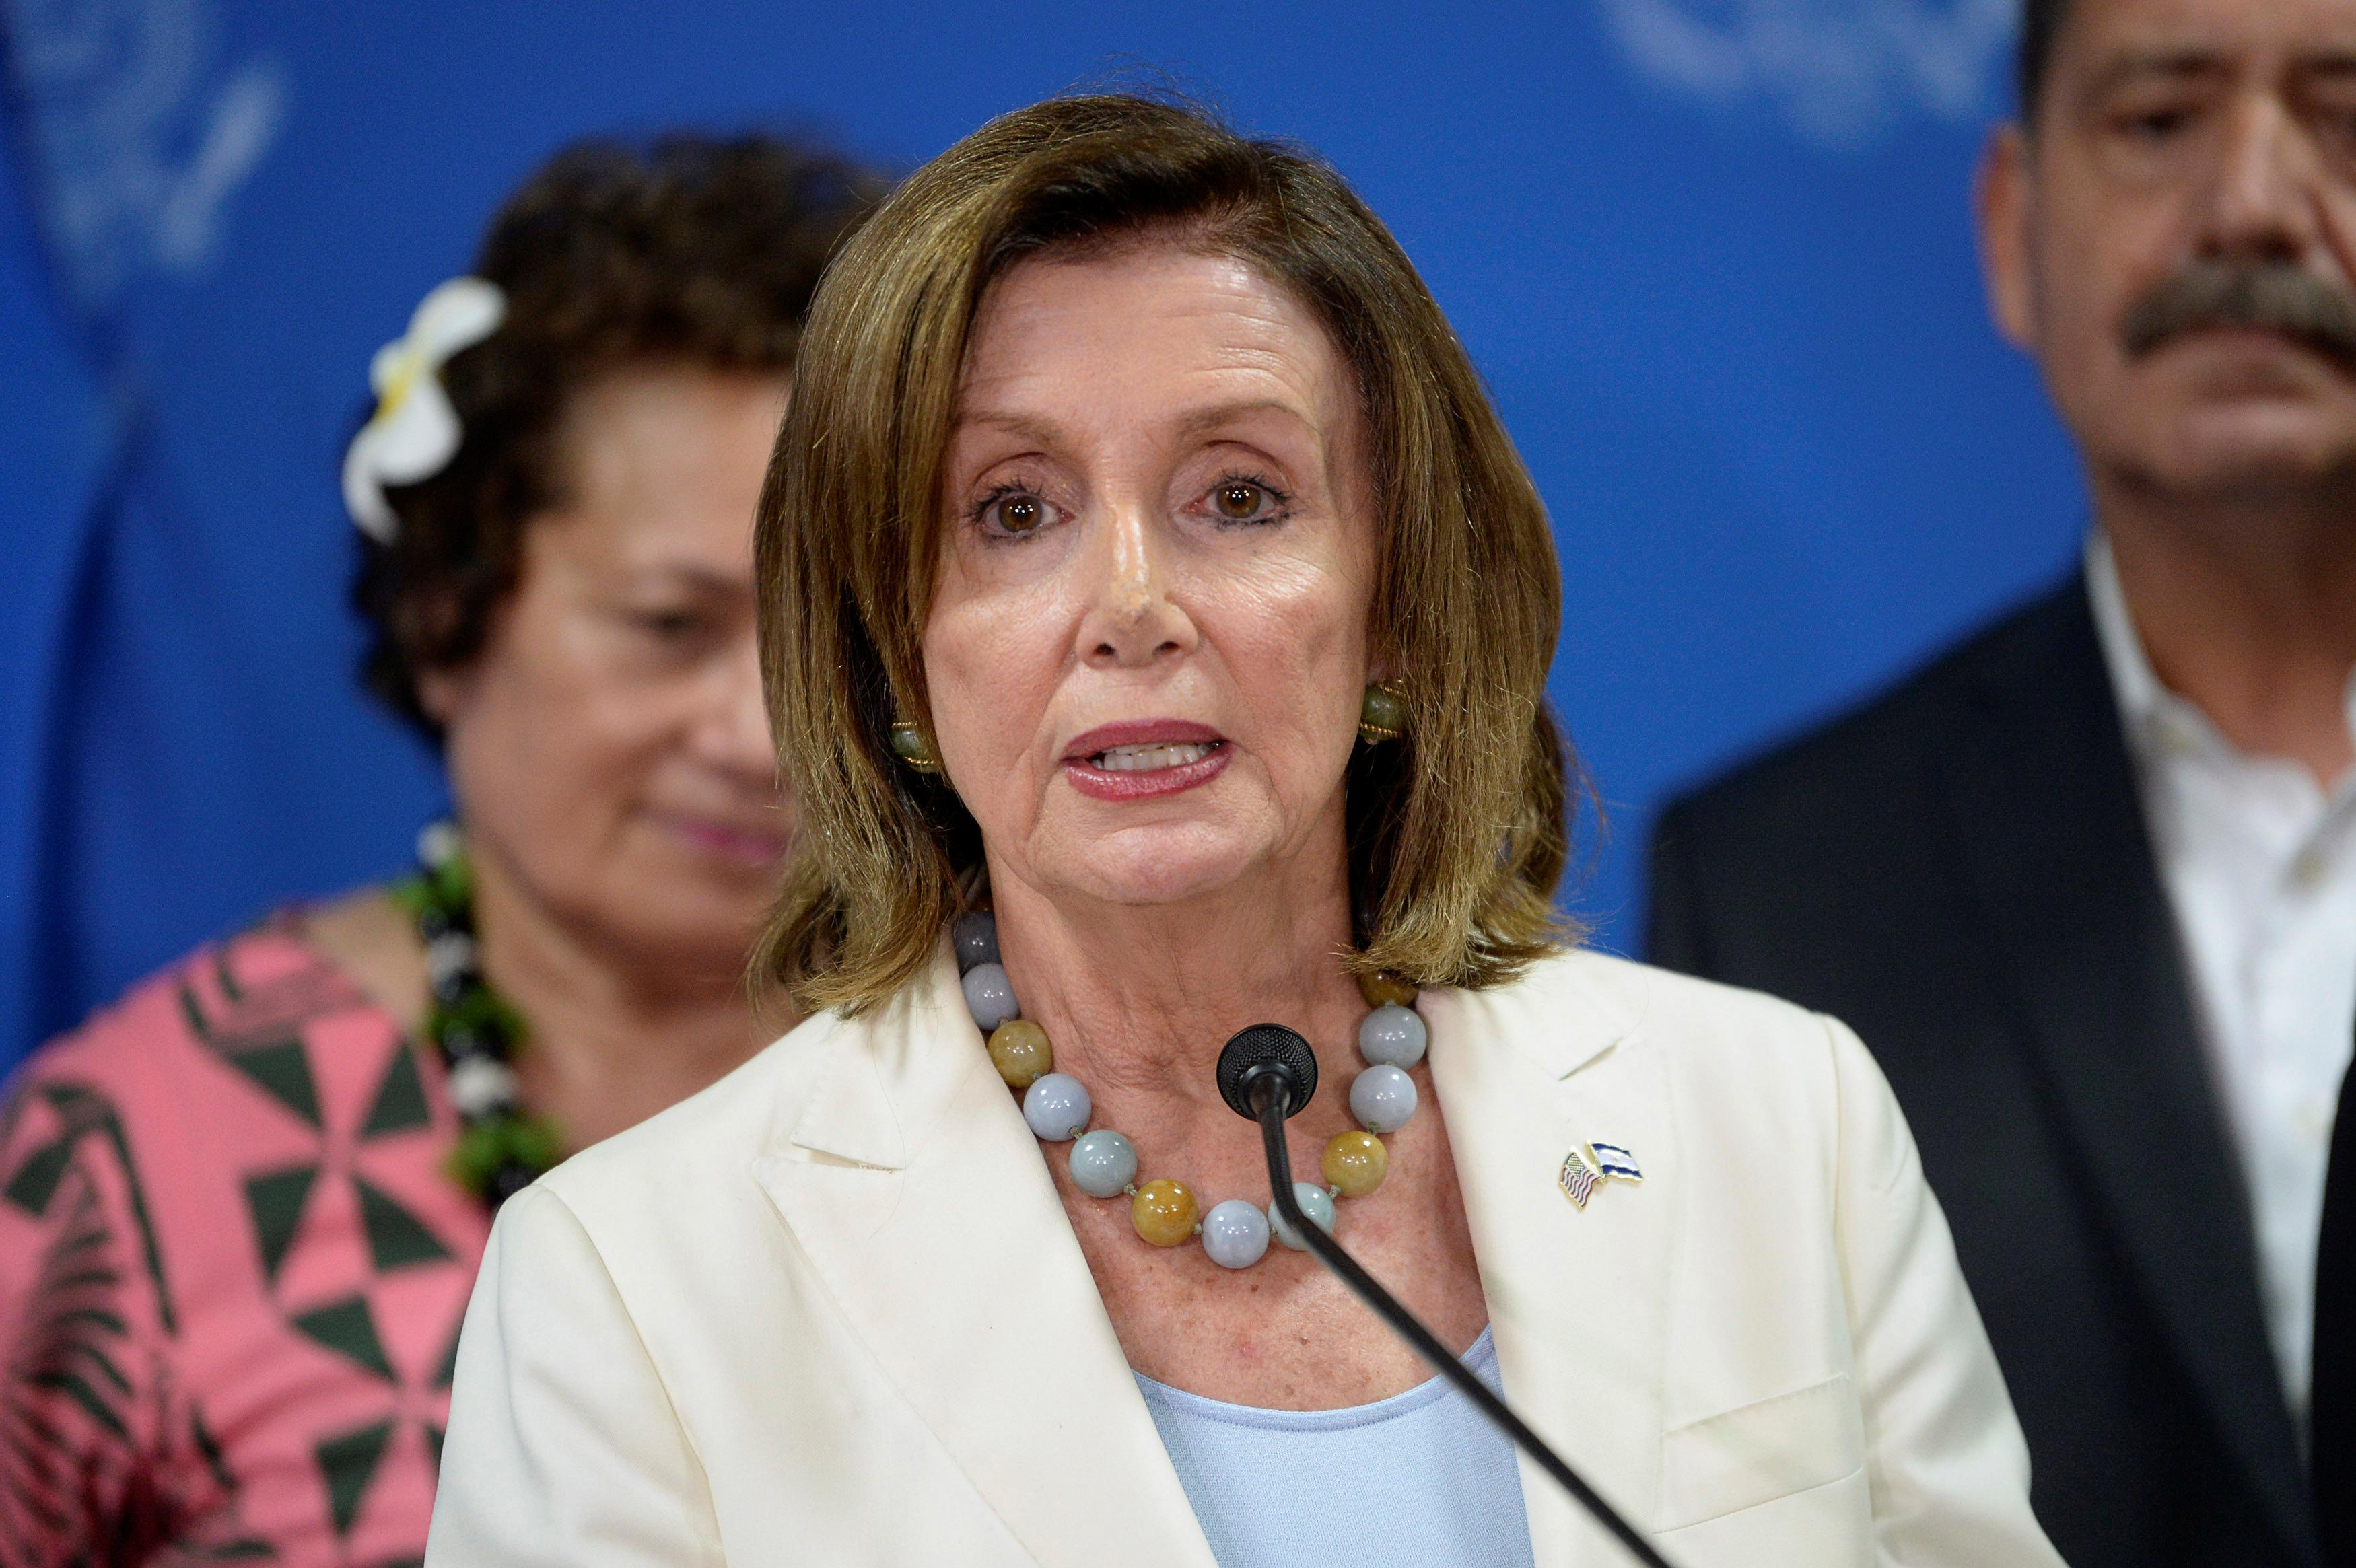 U.S. House Speaker Pelosi urges Israel to reverse decision to block lawmakers' visit